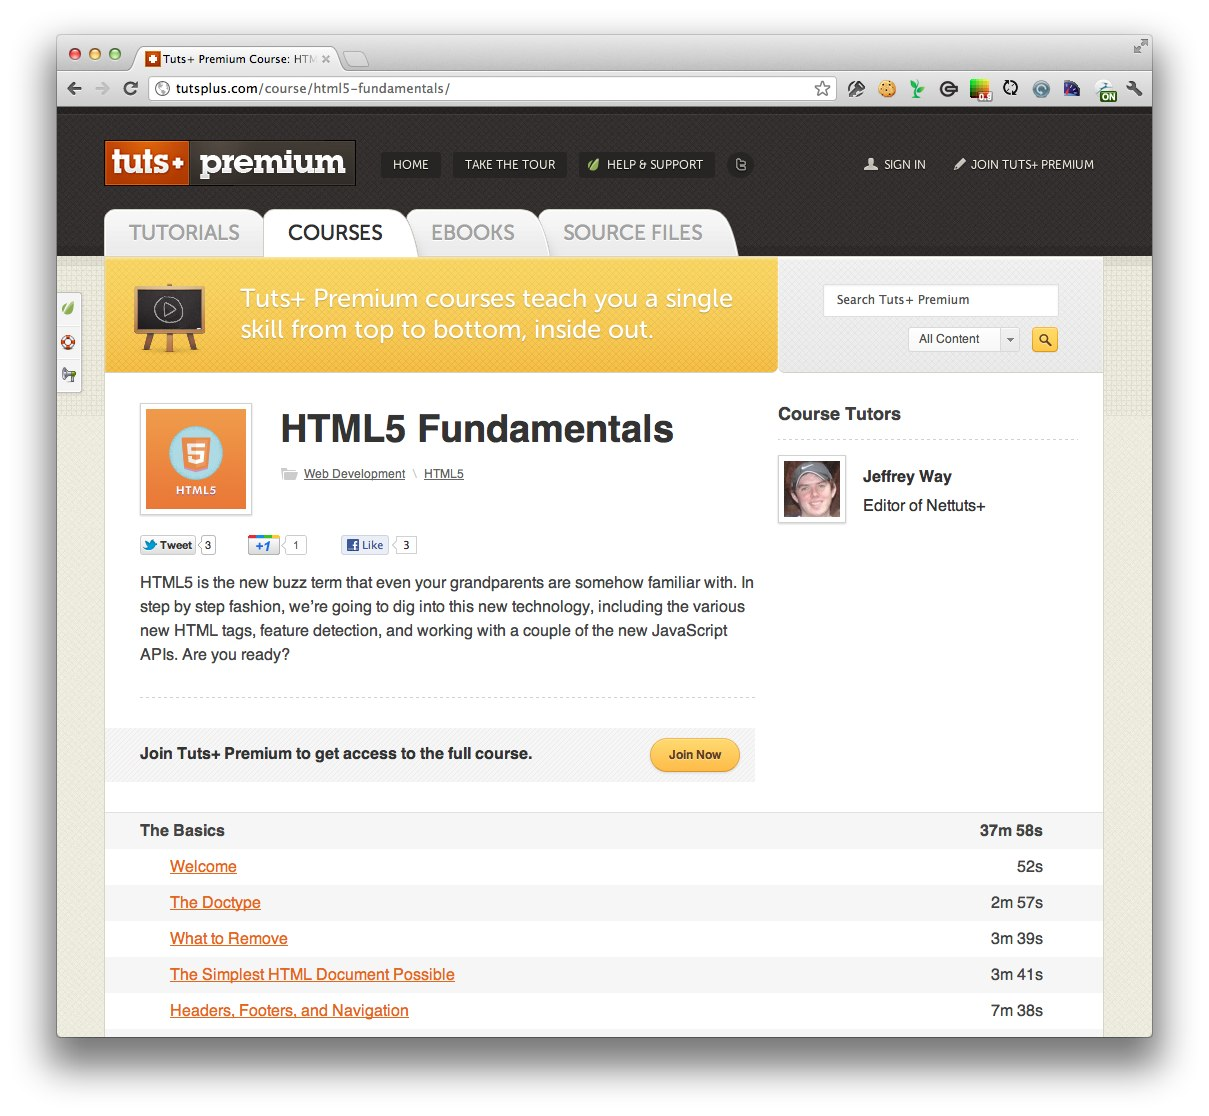 HTML5 Fundamentals Screencast Course